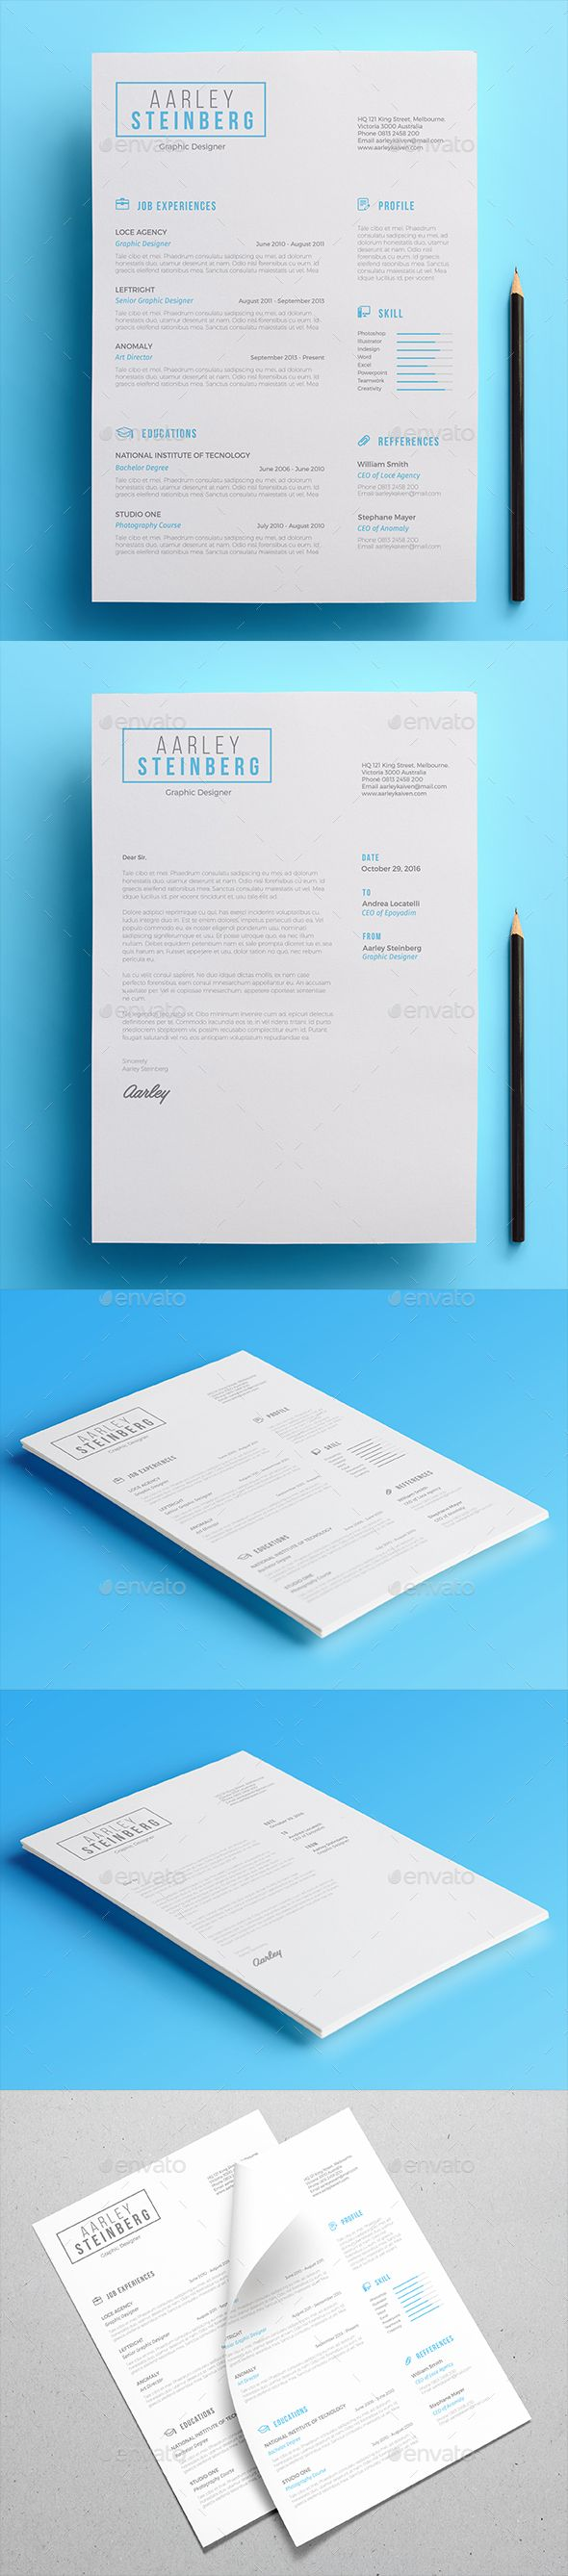 minimal resume resumes stationery here minimal resume 02 resumes stationery here